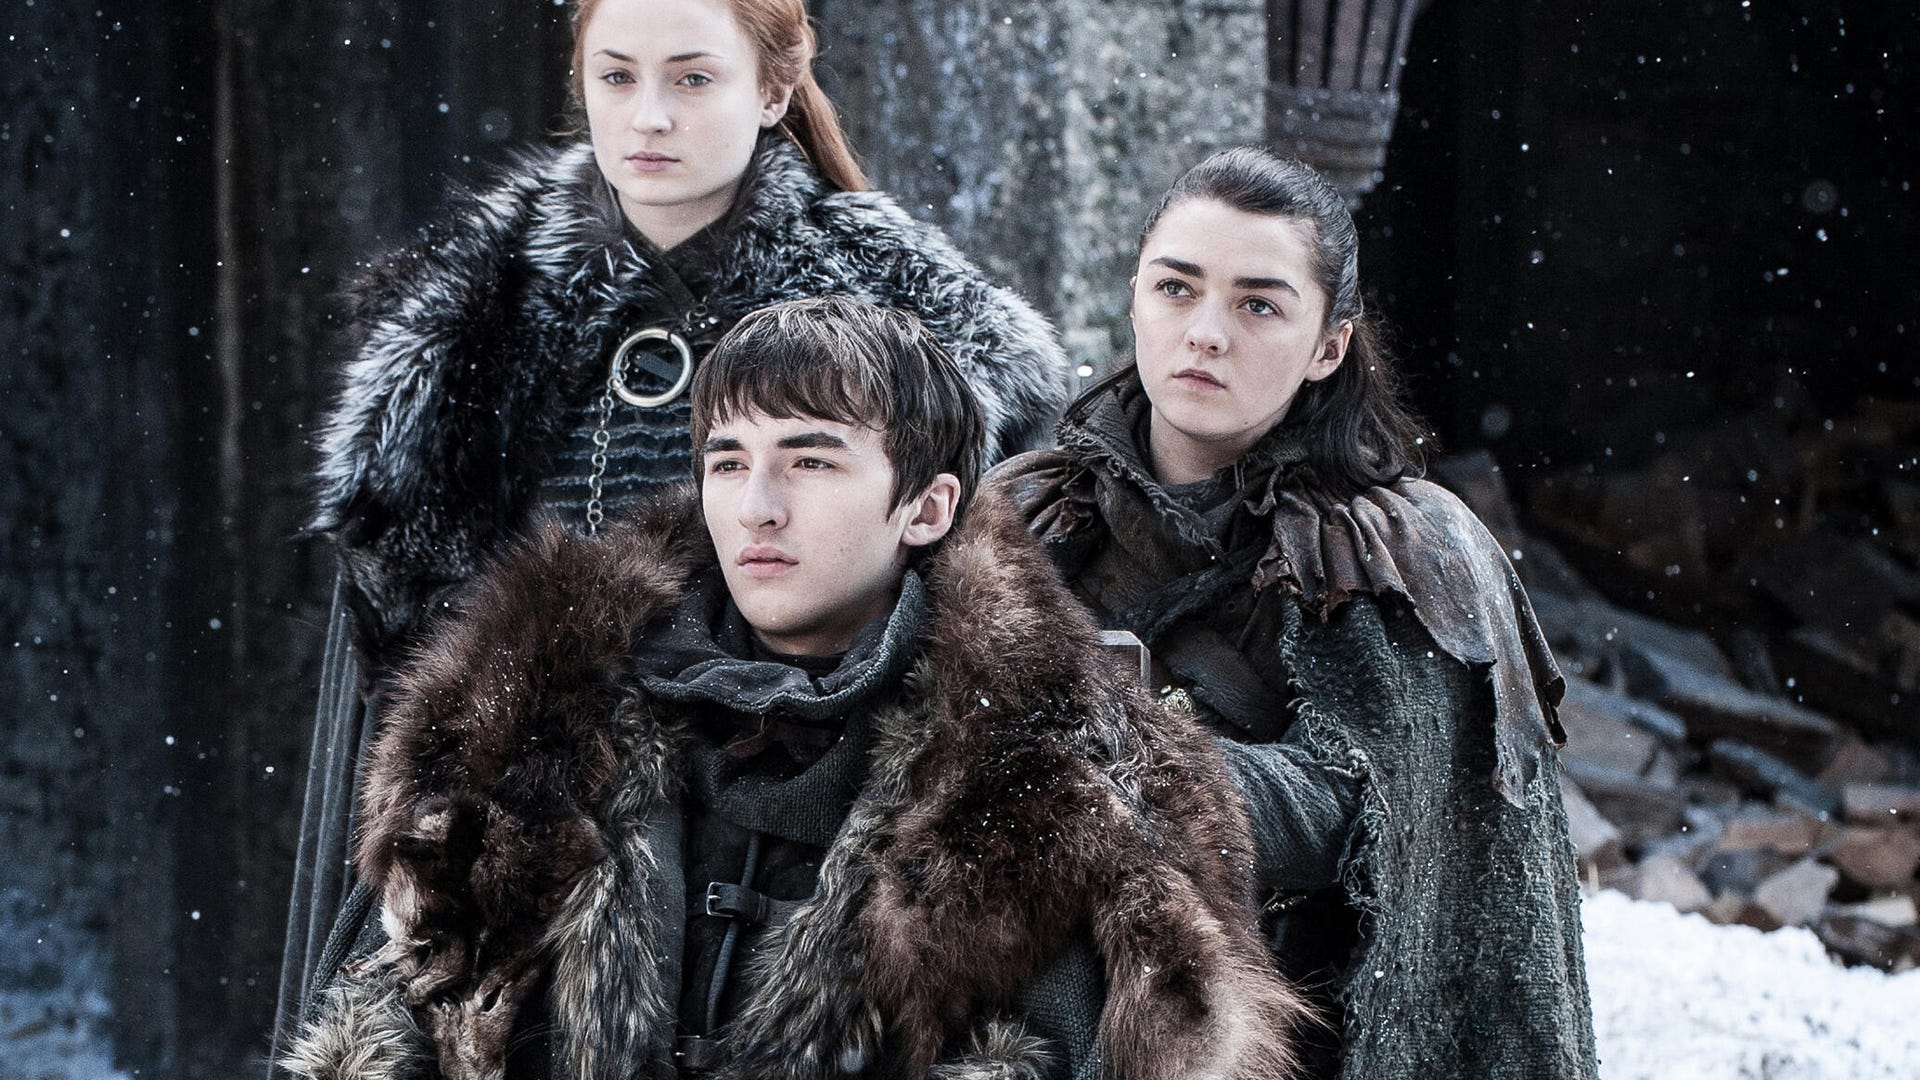 Sophie Turner, Isaac Hempstead-Wright and Maisie Williams, Game of Thrones